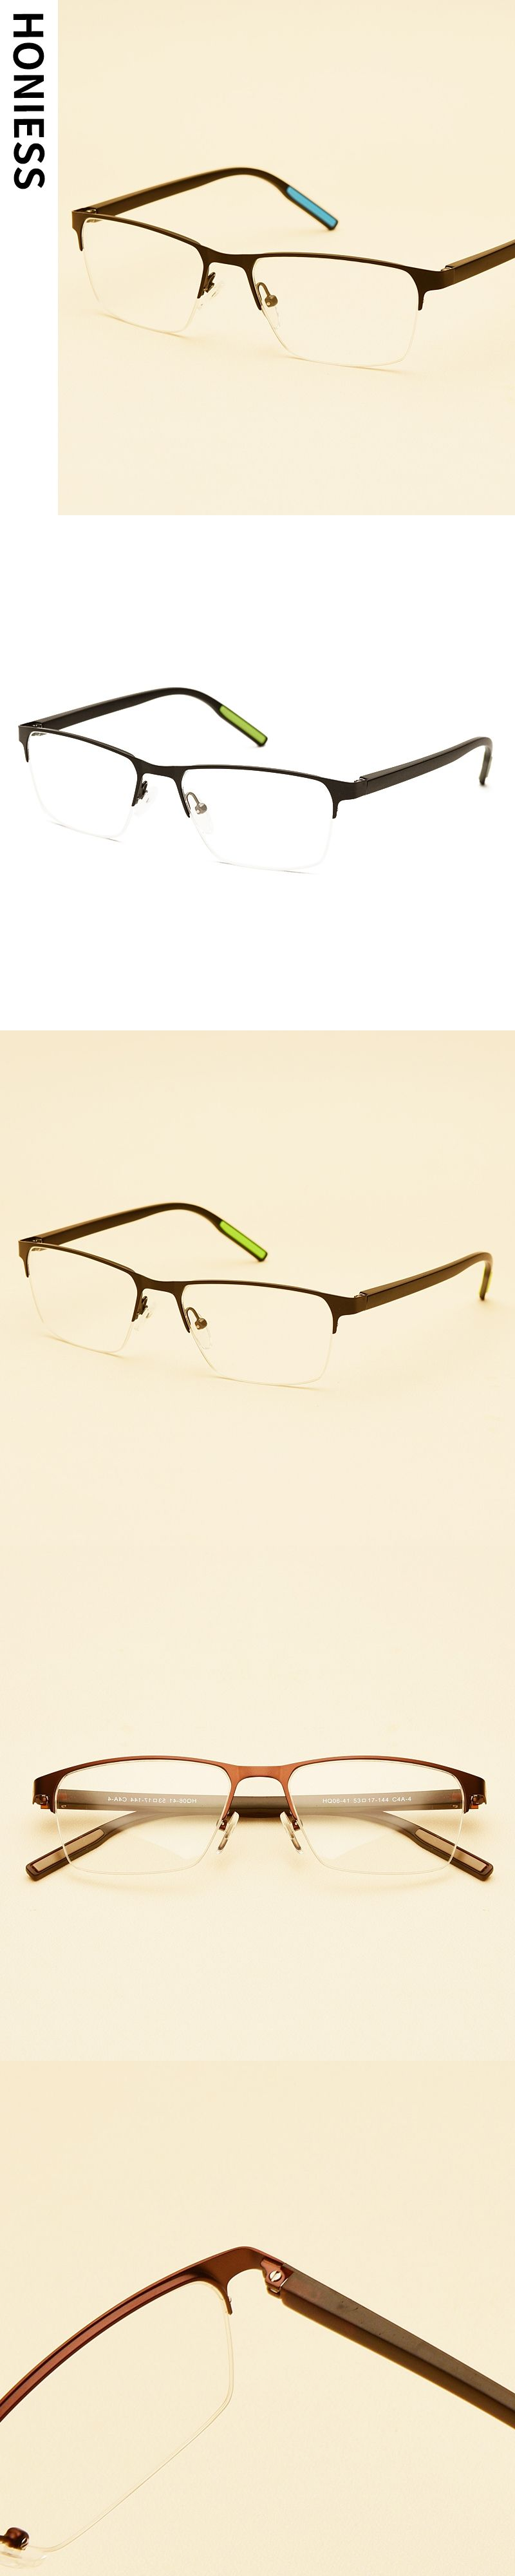 71ddec760d Rectangular Rimless Reading Glasses « One More Soul